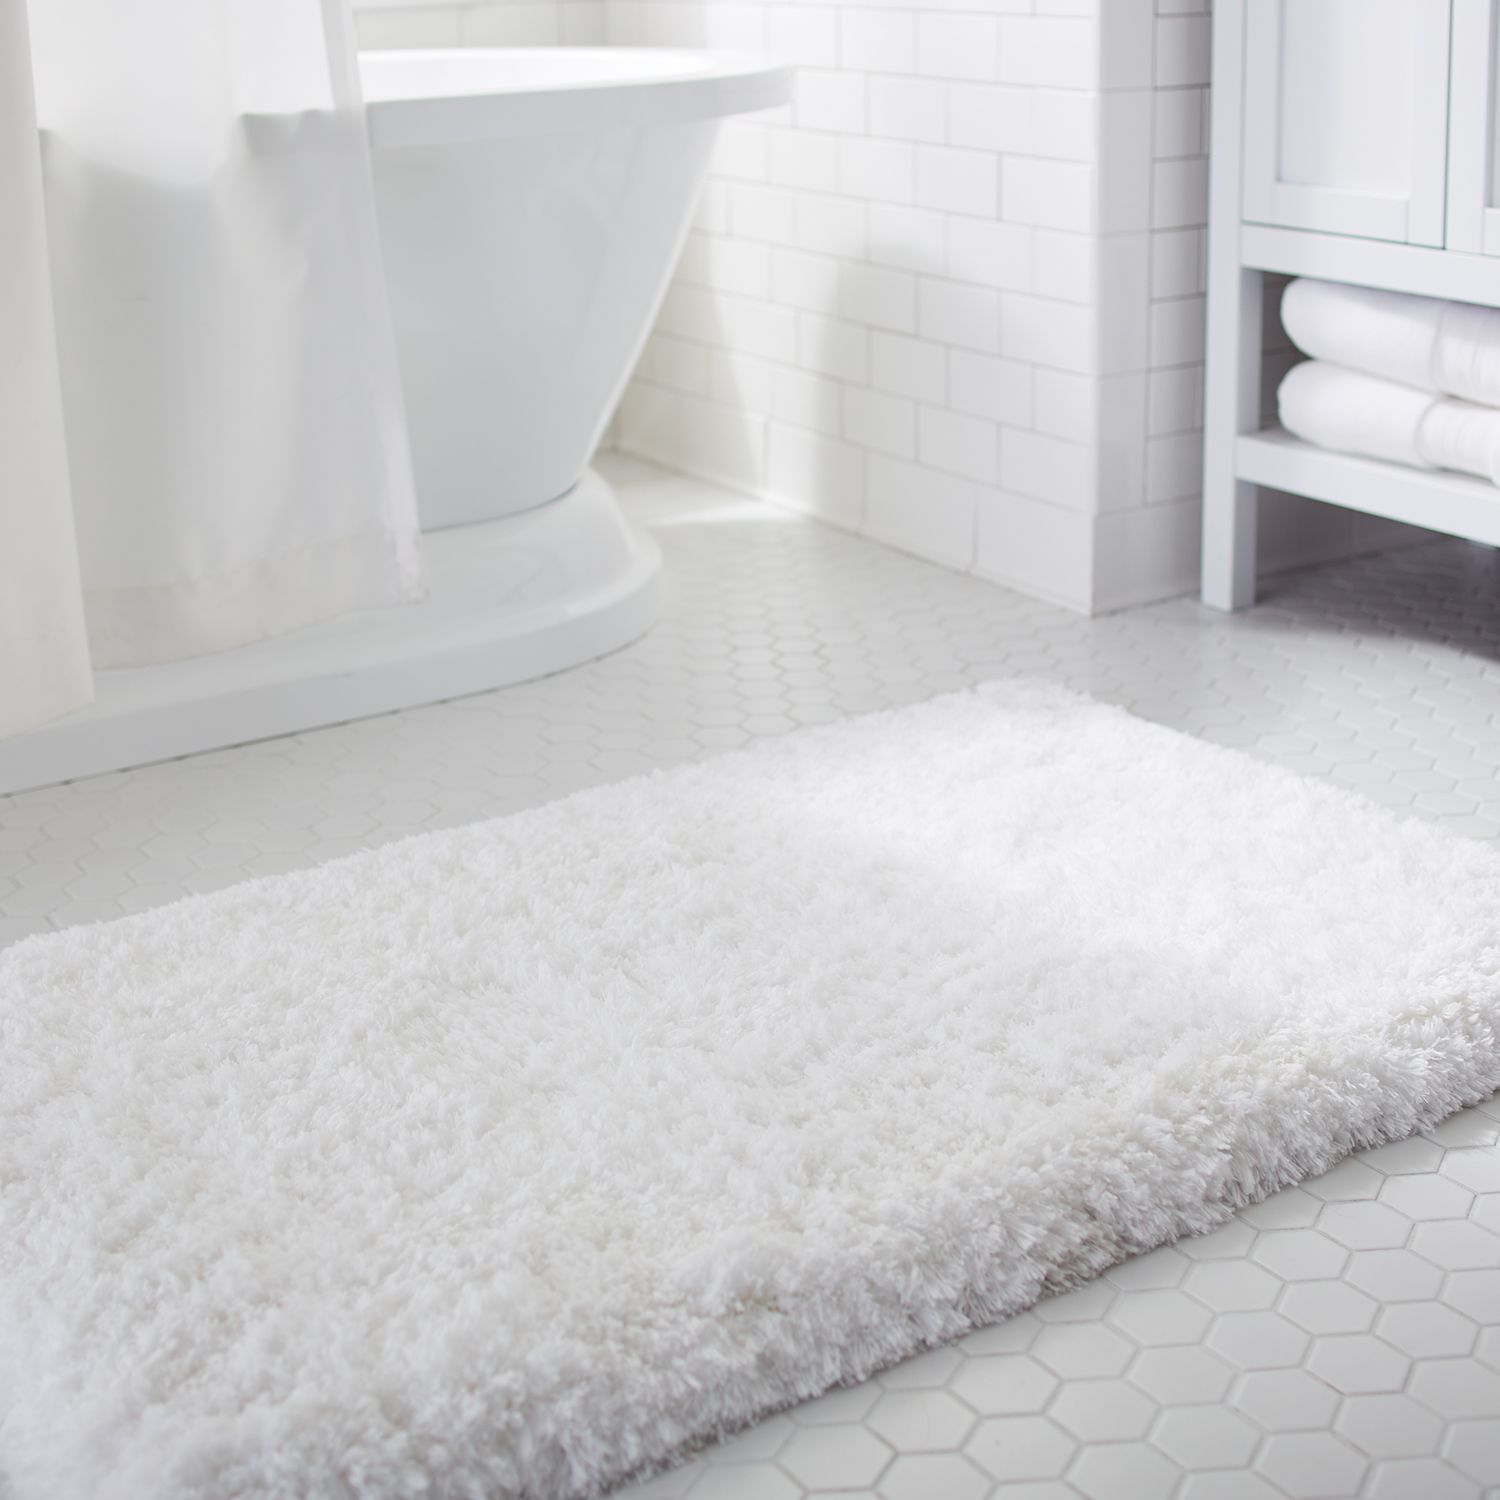 Cloud Step® Memory Foam White 24x60 Bath Rug | Products | Pinterest ...